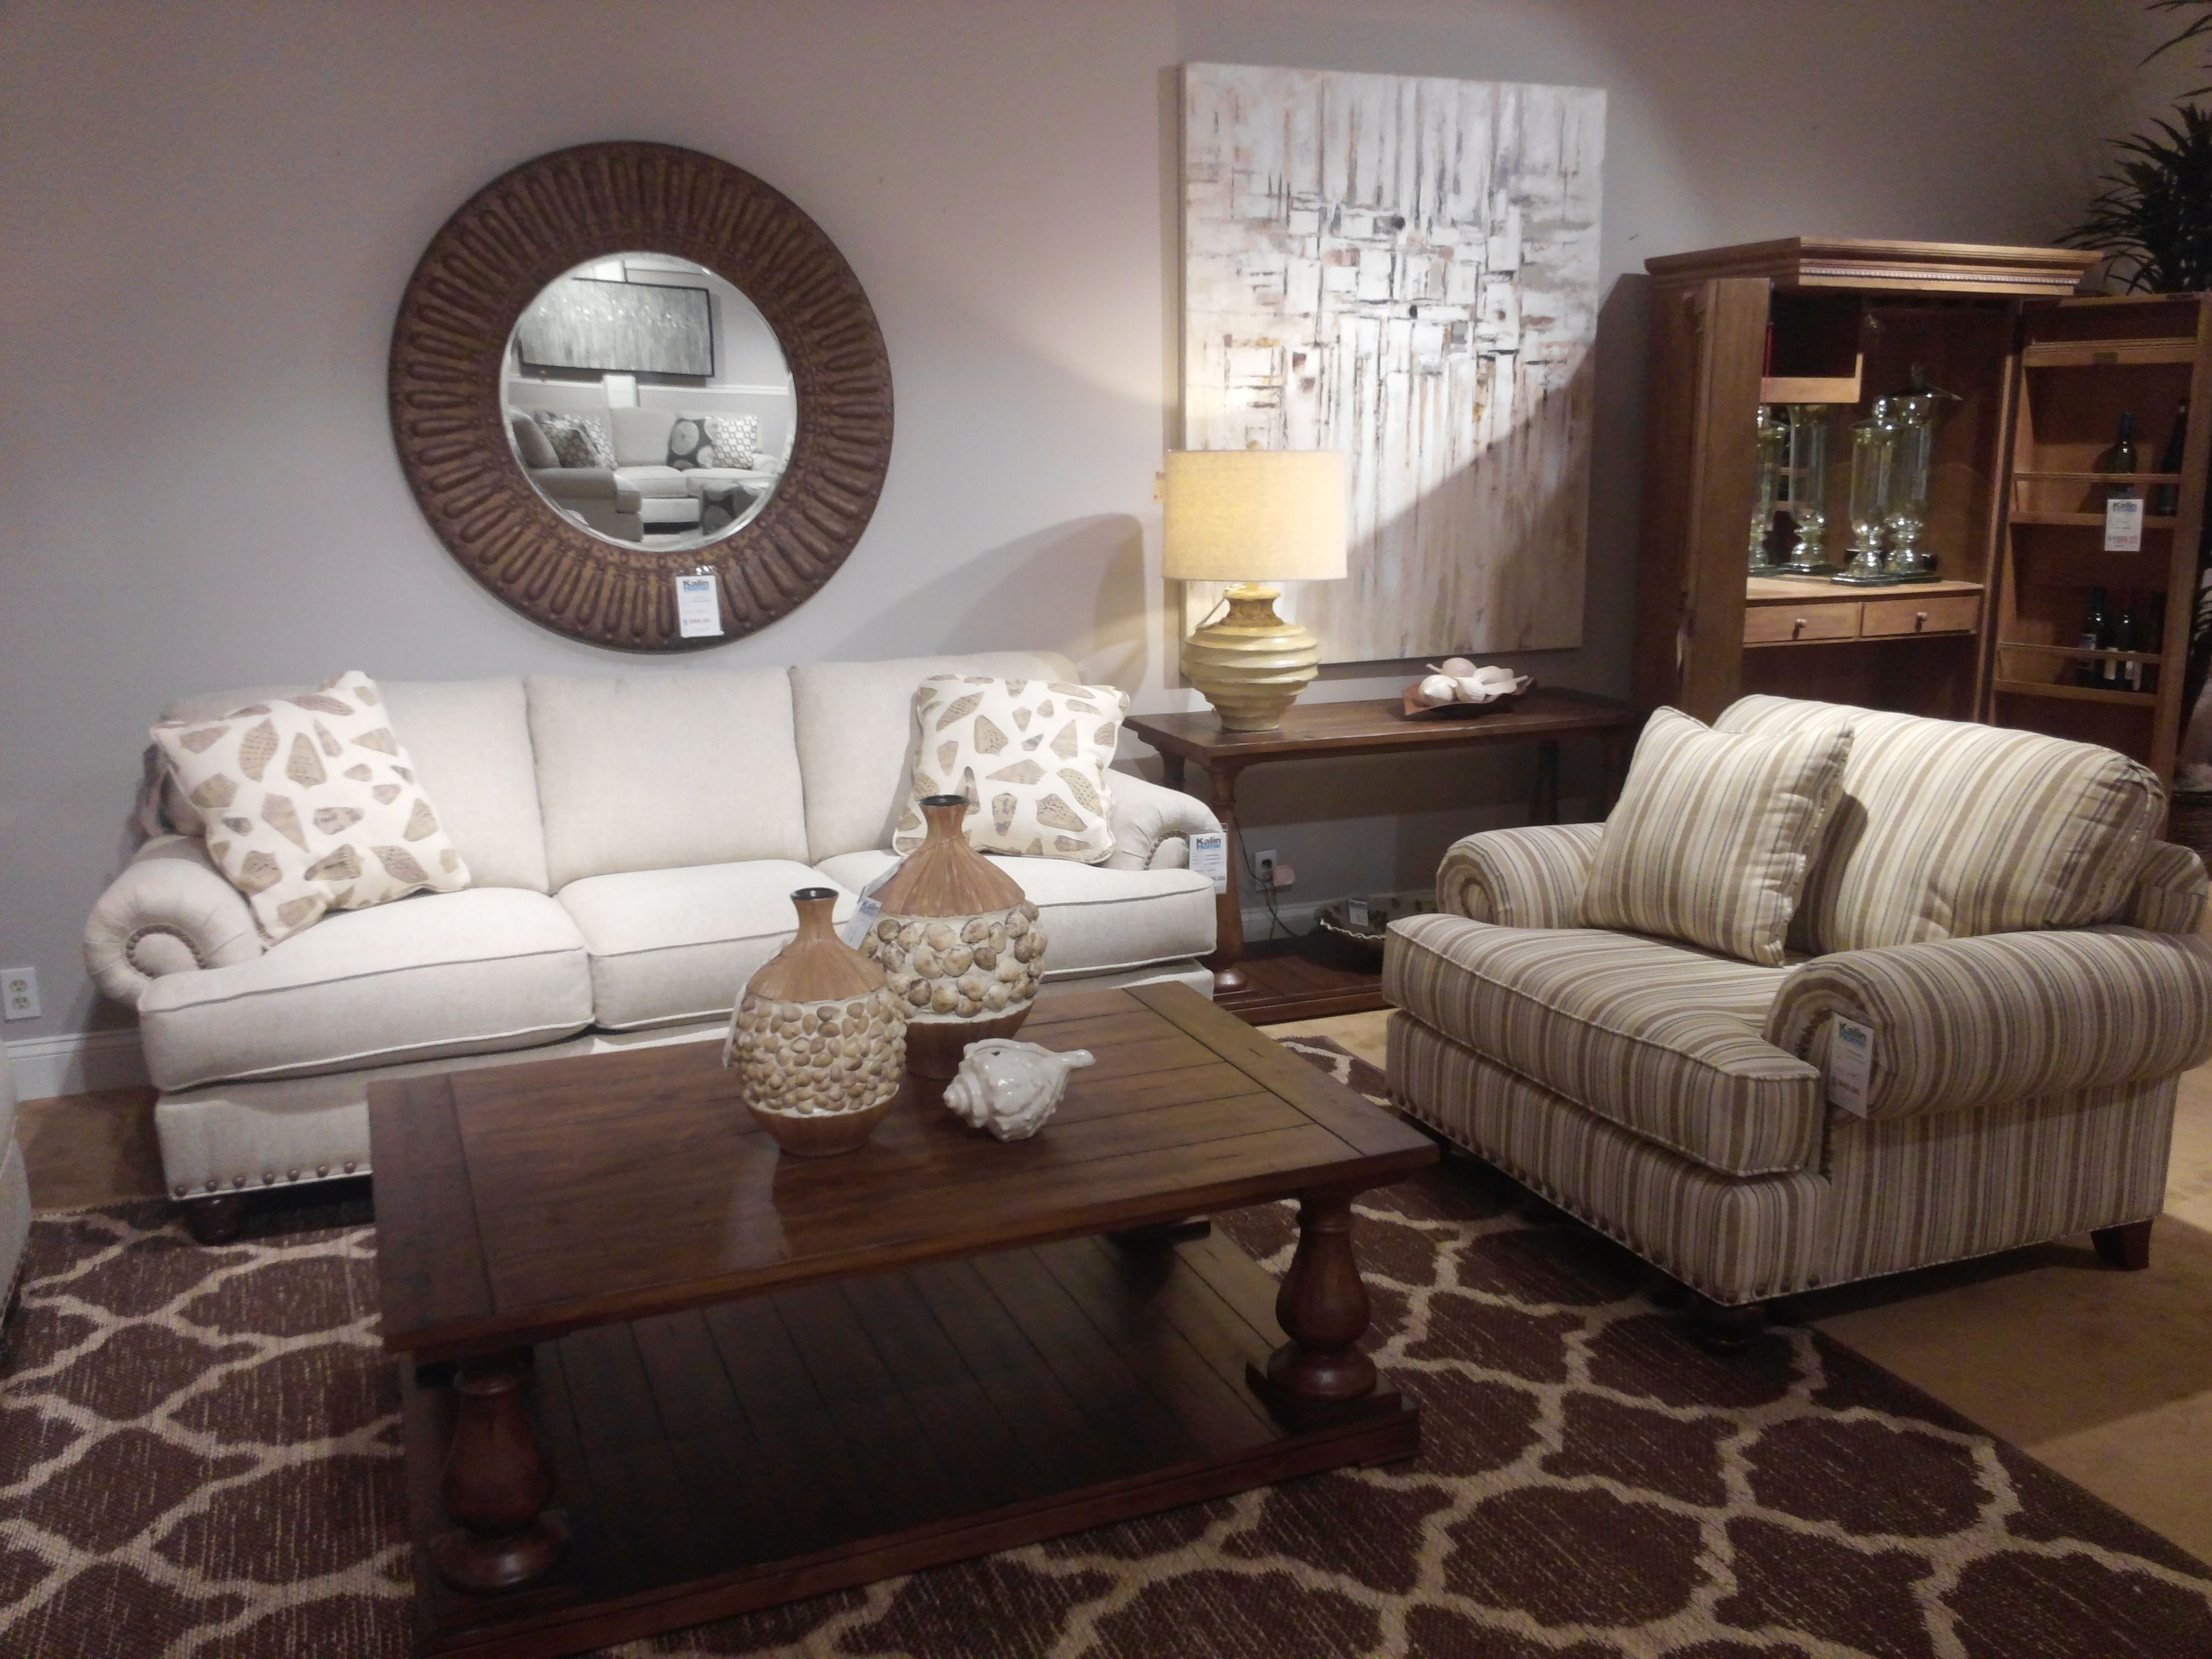 Craftmaster Rachael Ray Paula Dean Featured At Kalin Home Furnishings Ormond Beach Living Room